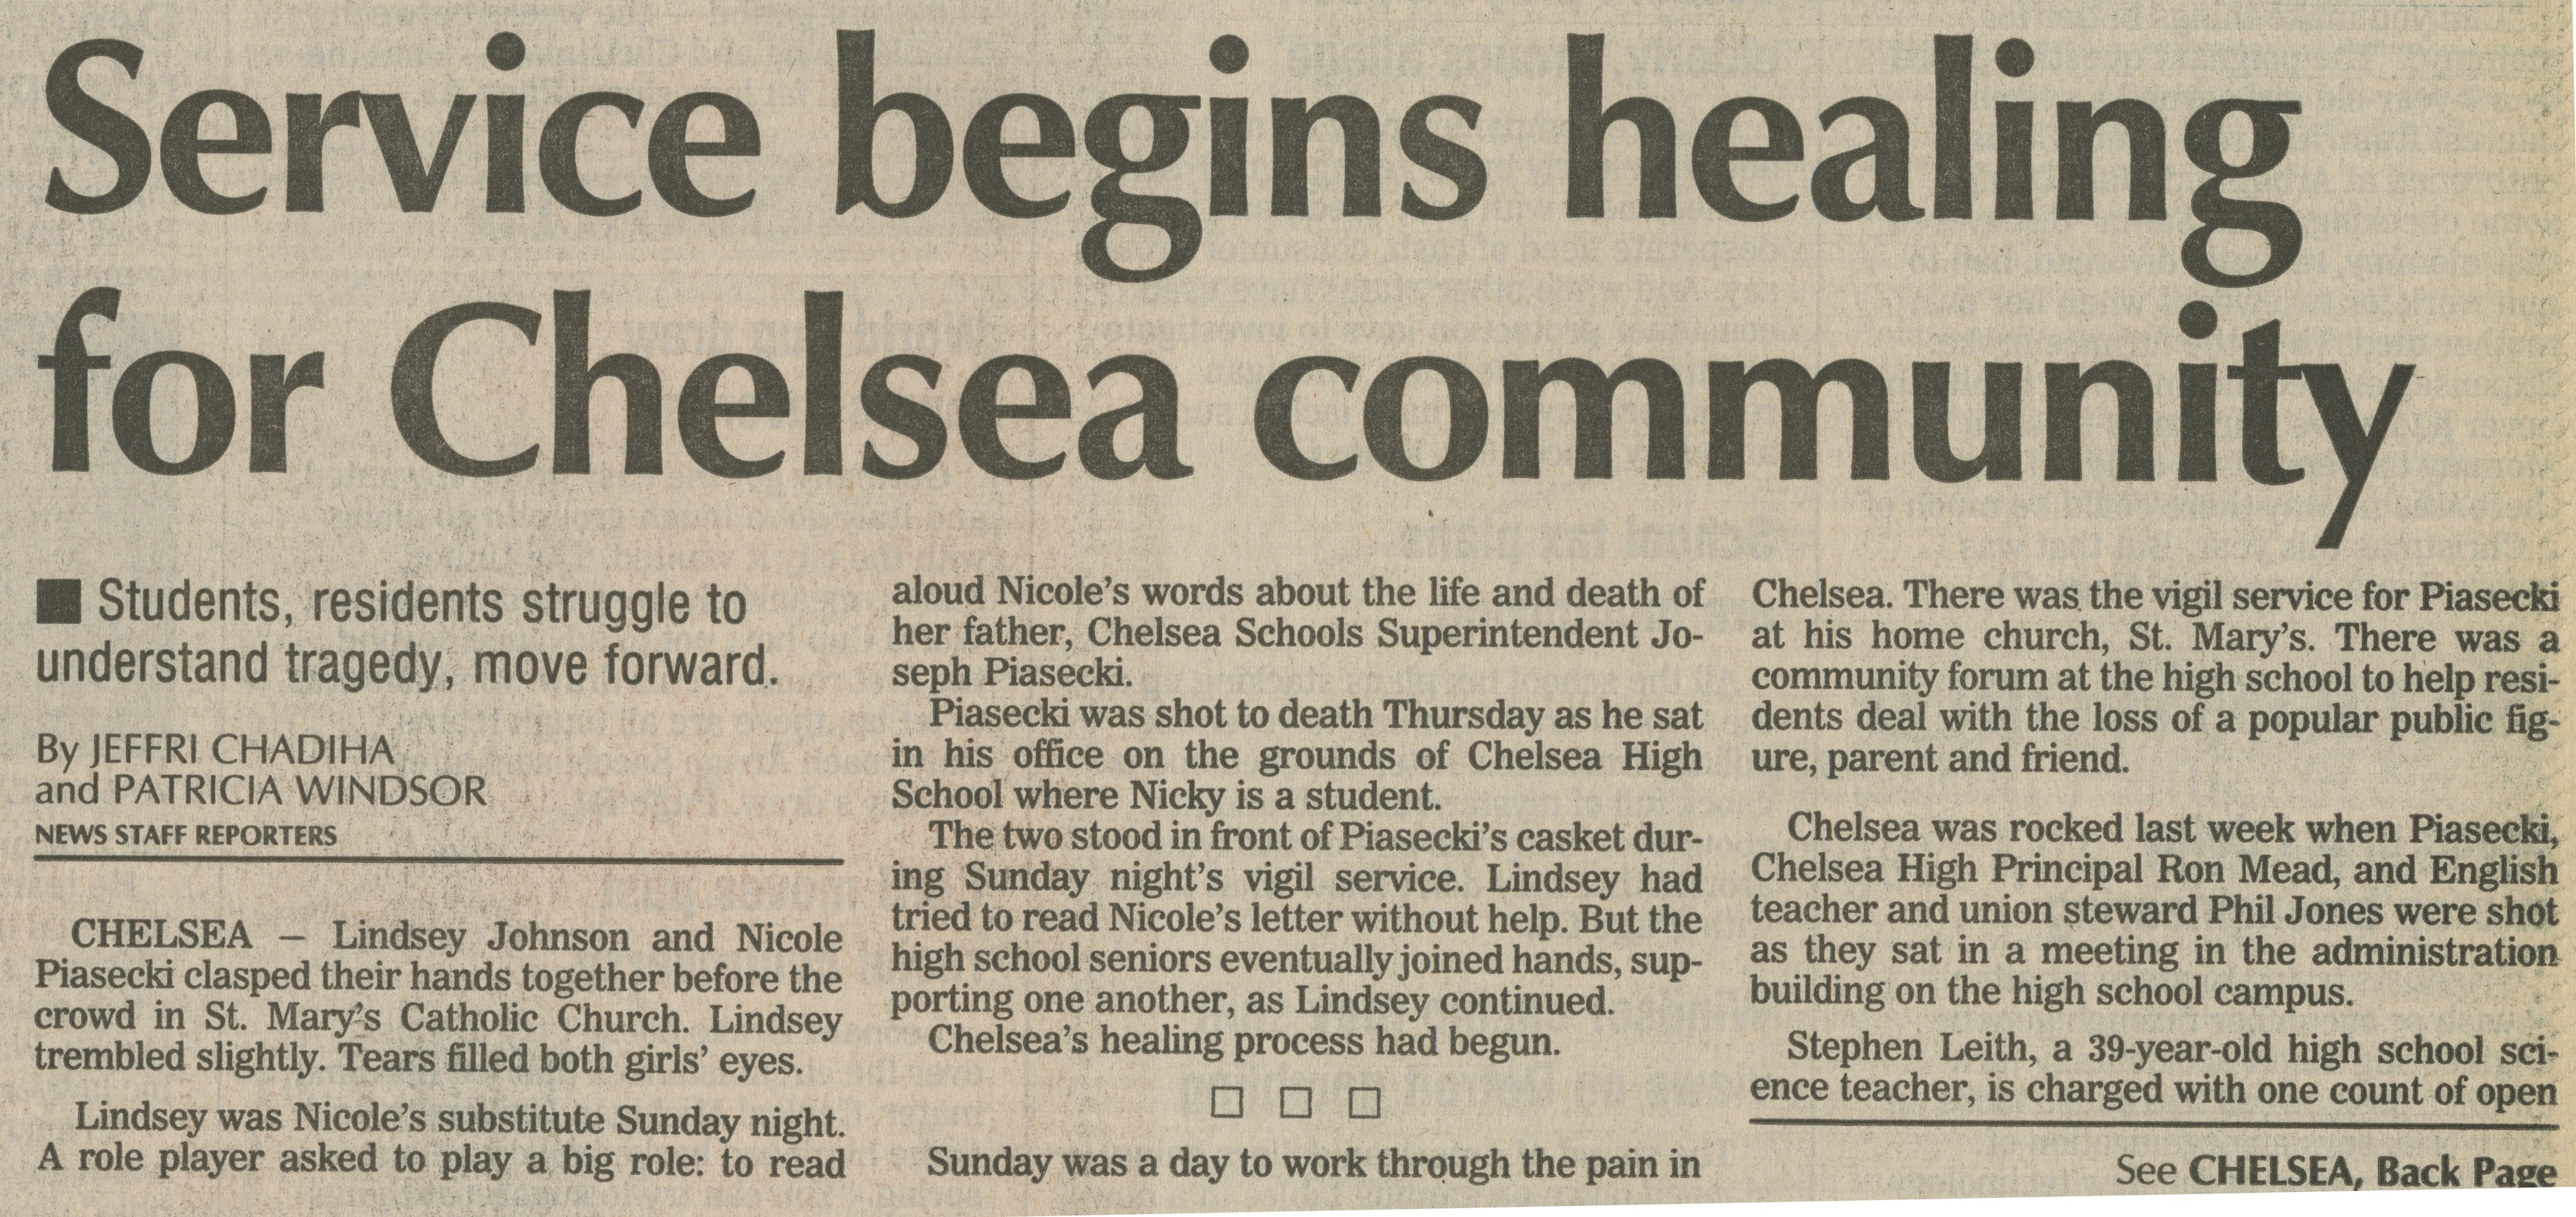 Service begins healing for Chelsea community image